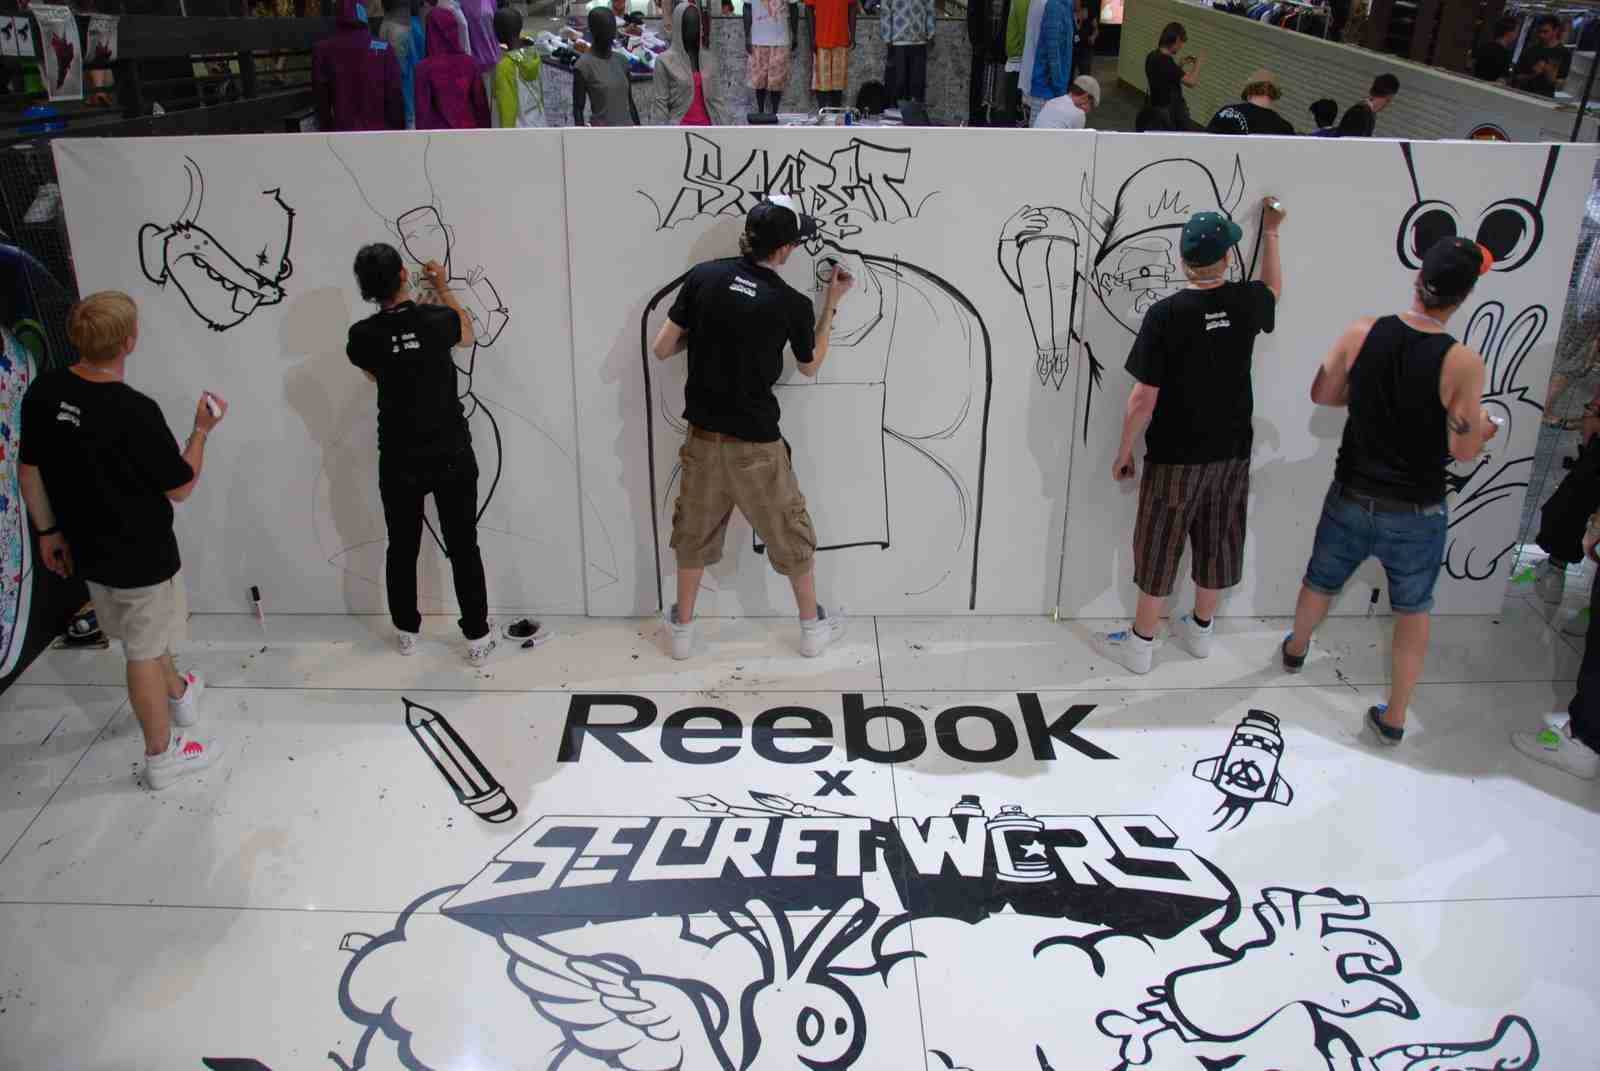 Reebok X Secret Wars